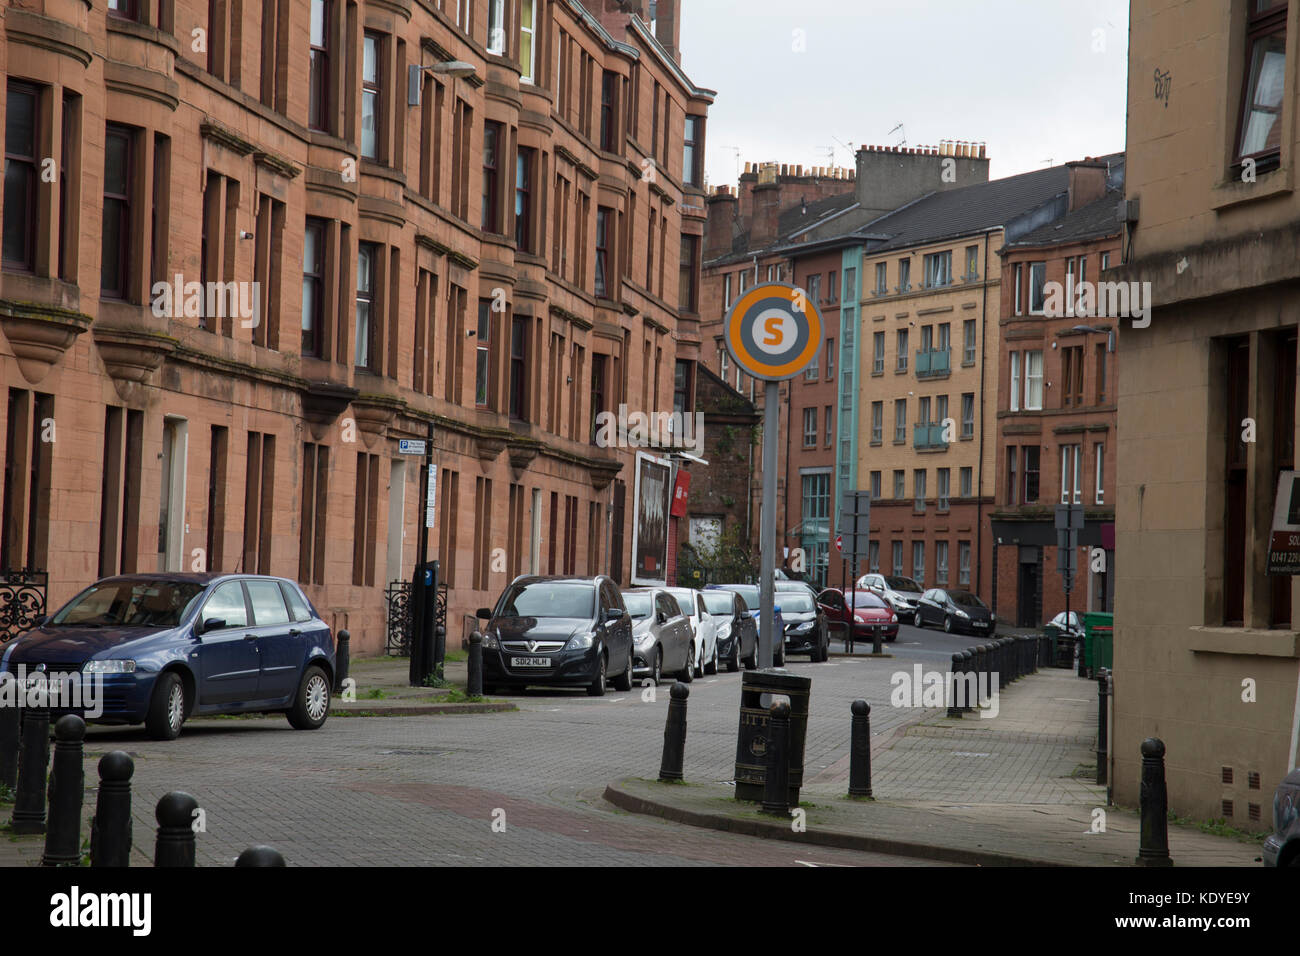 Glasgow Partick street scene with tenement flats Stock Photo